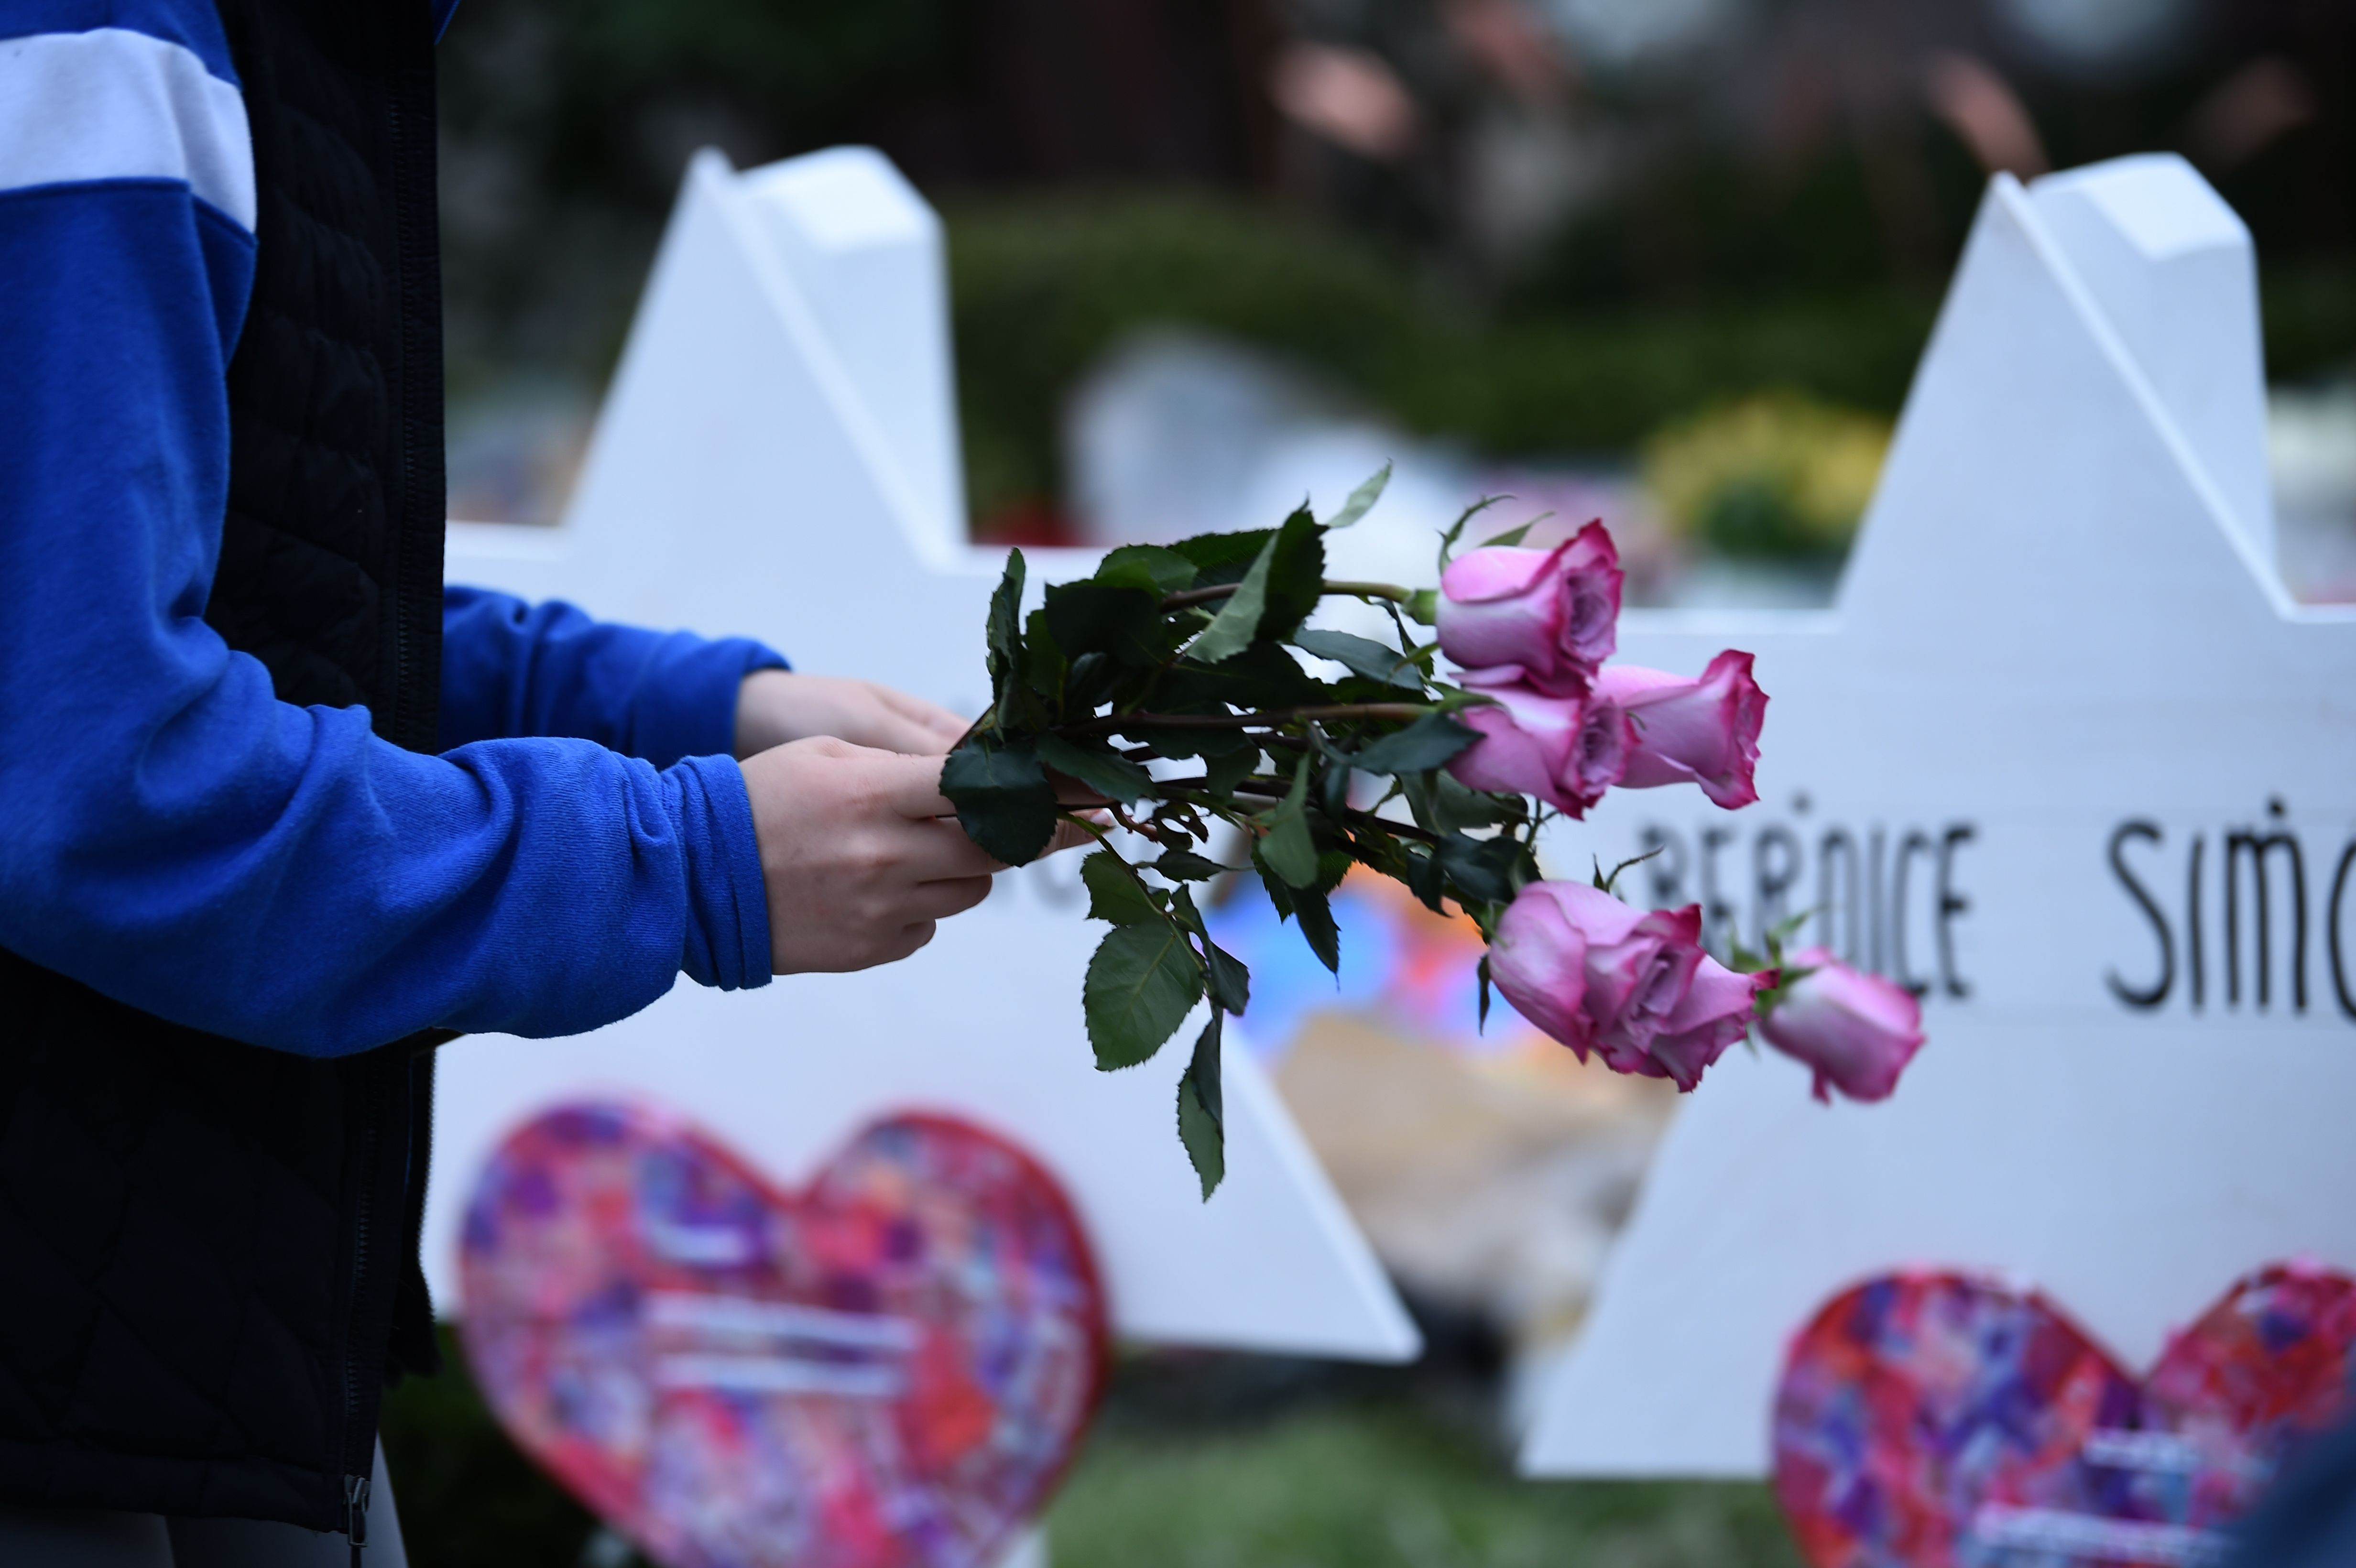 People pay their respects at a memorial outside the Tree of Life synagogue after a shooting there left 11 people dead in the Squirrel Hill neighborhood of Pittsburgh, Pennsylvania on October 29, 2018. Bernice and Sylvan Simon, married 62 years, were laid to rest Thursday.